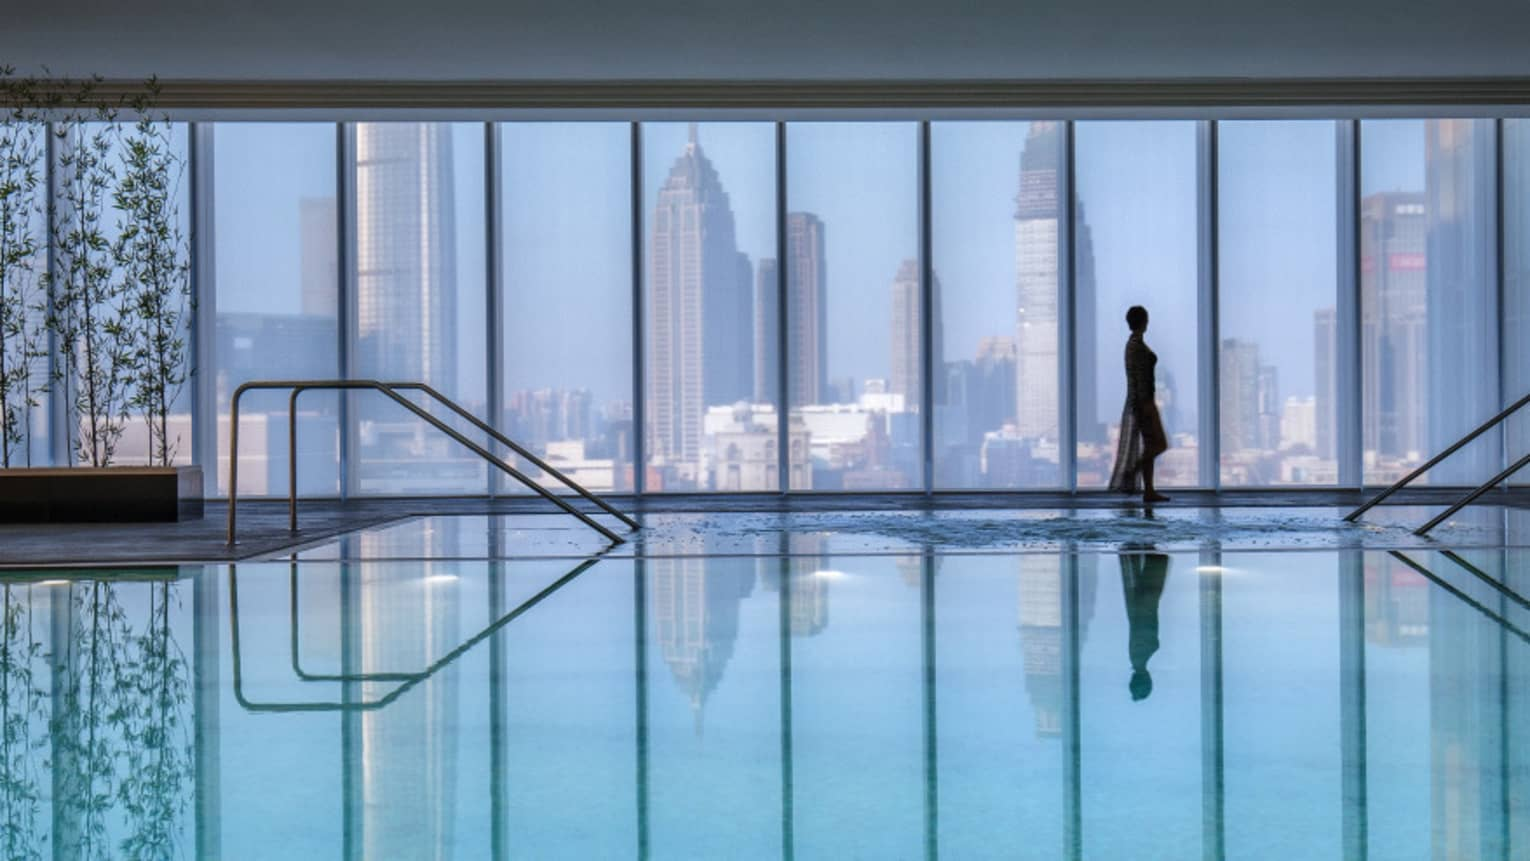 Silhouette of woman walking by blue indoor swimming pool, floor-to-ceiling window